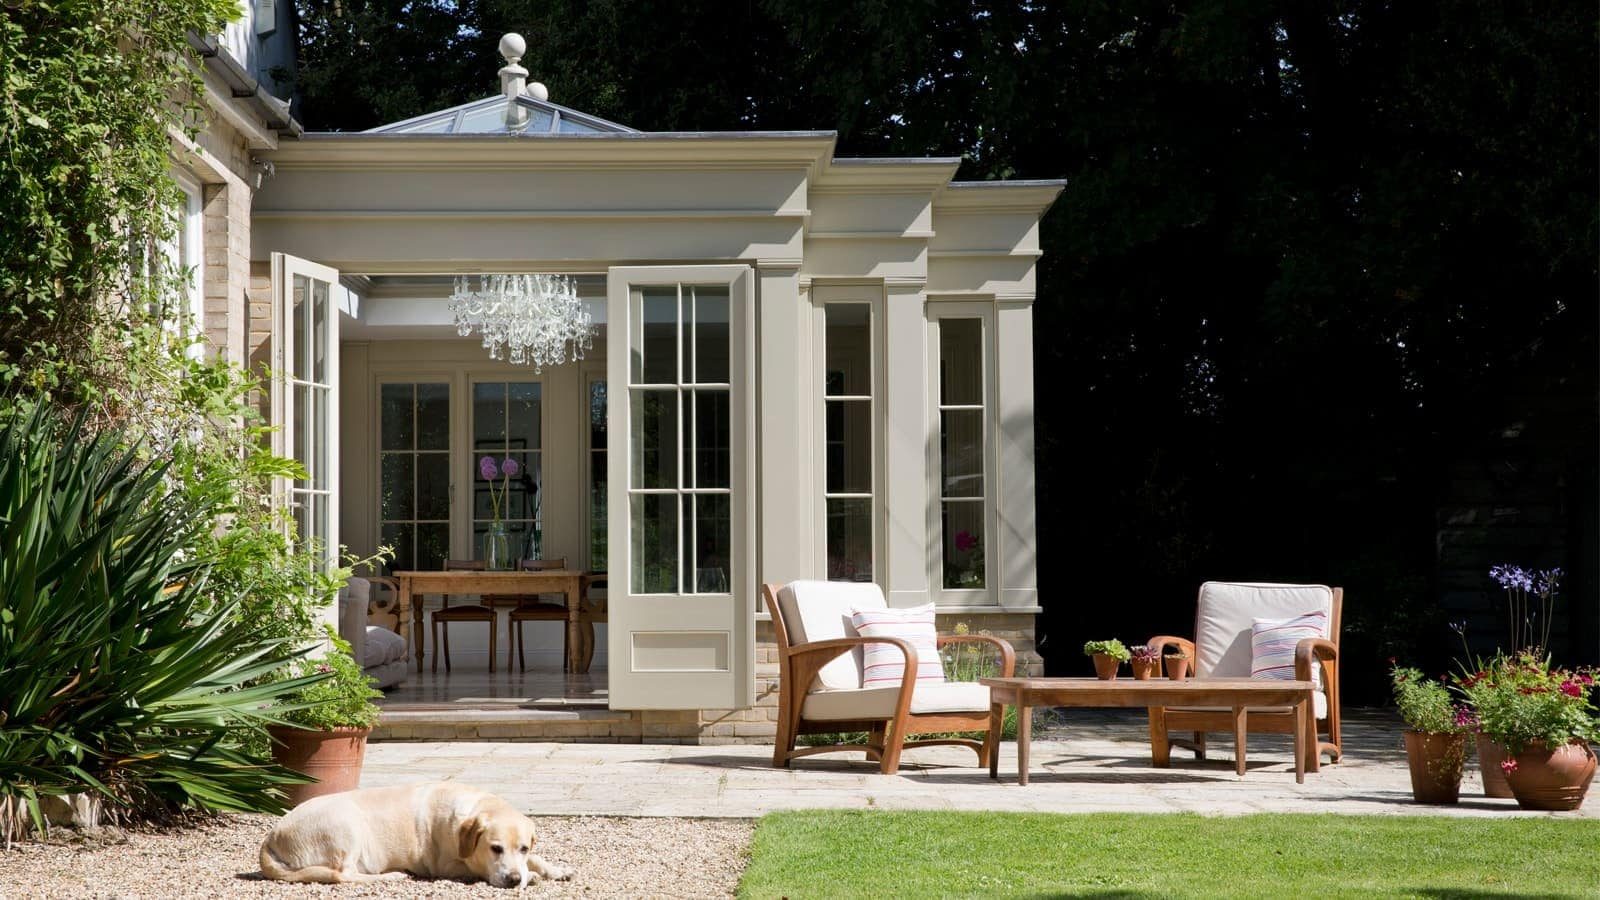 Orangery with pilasters cream